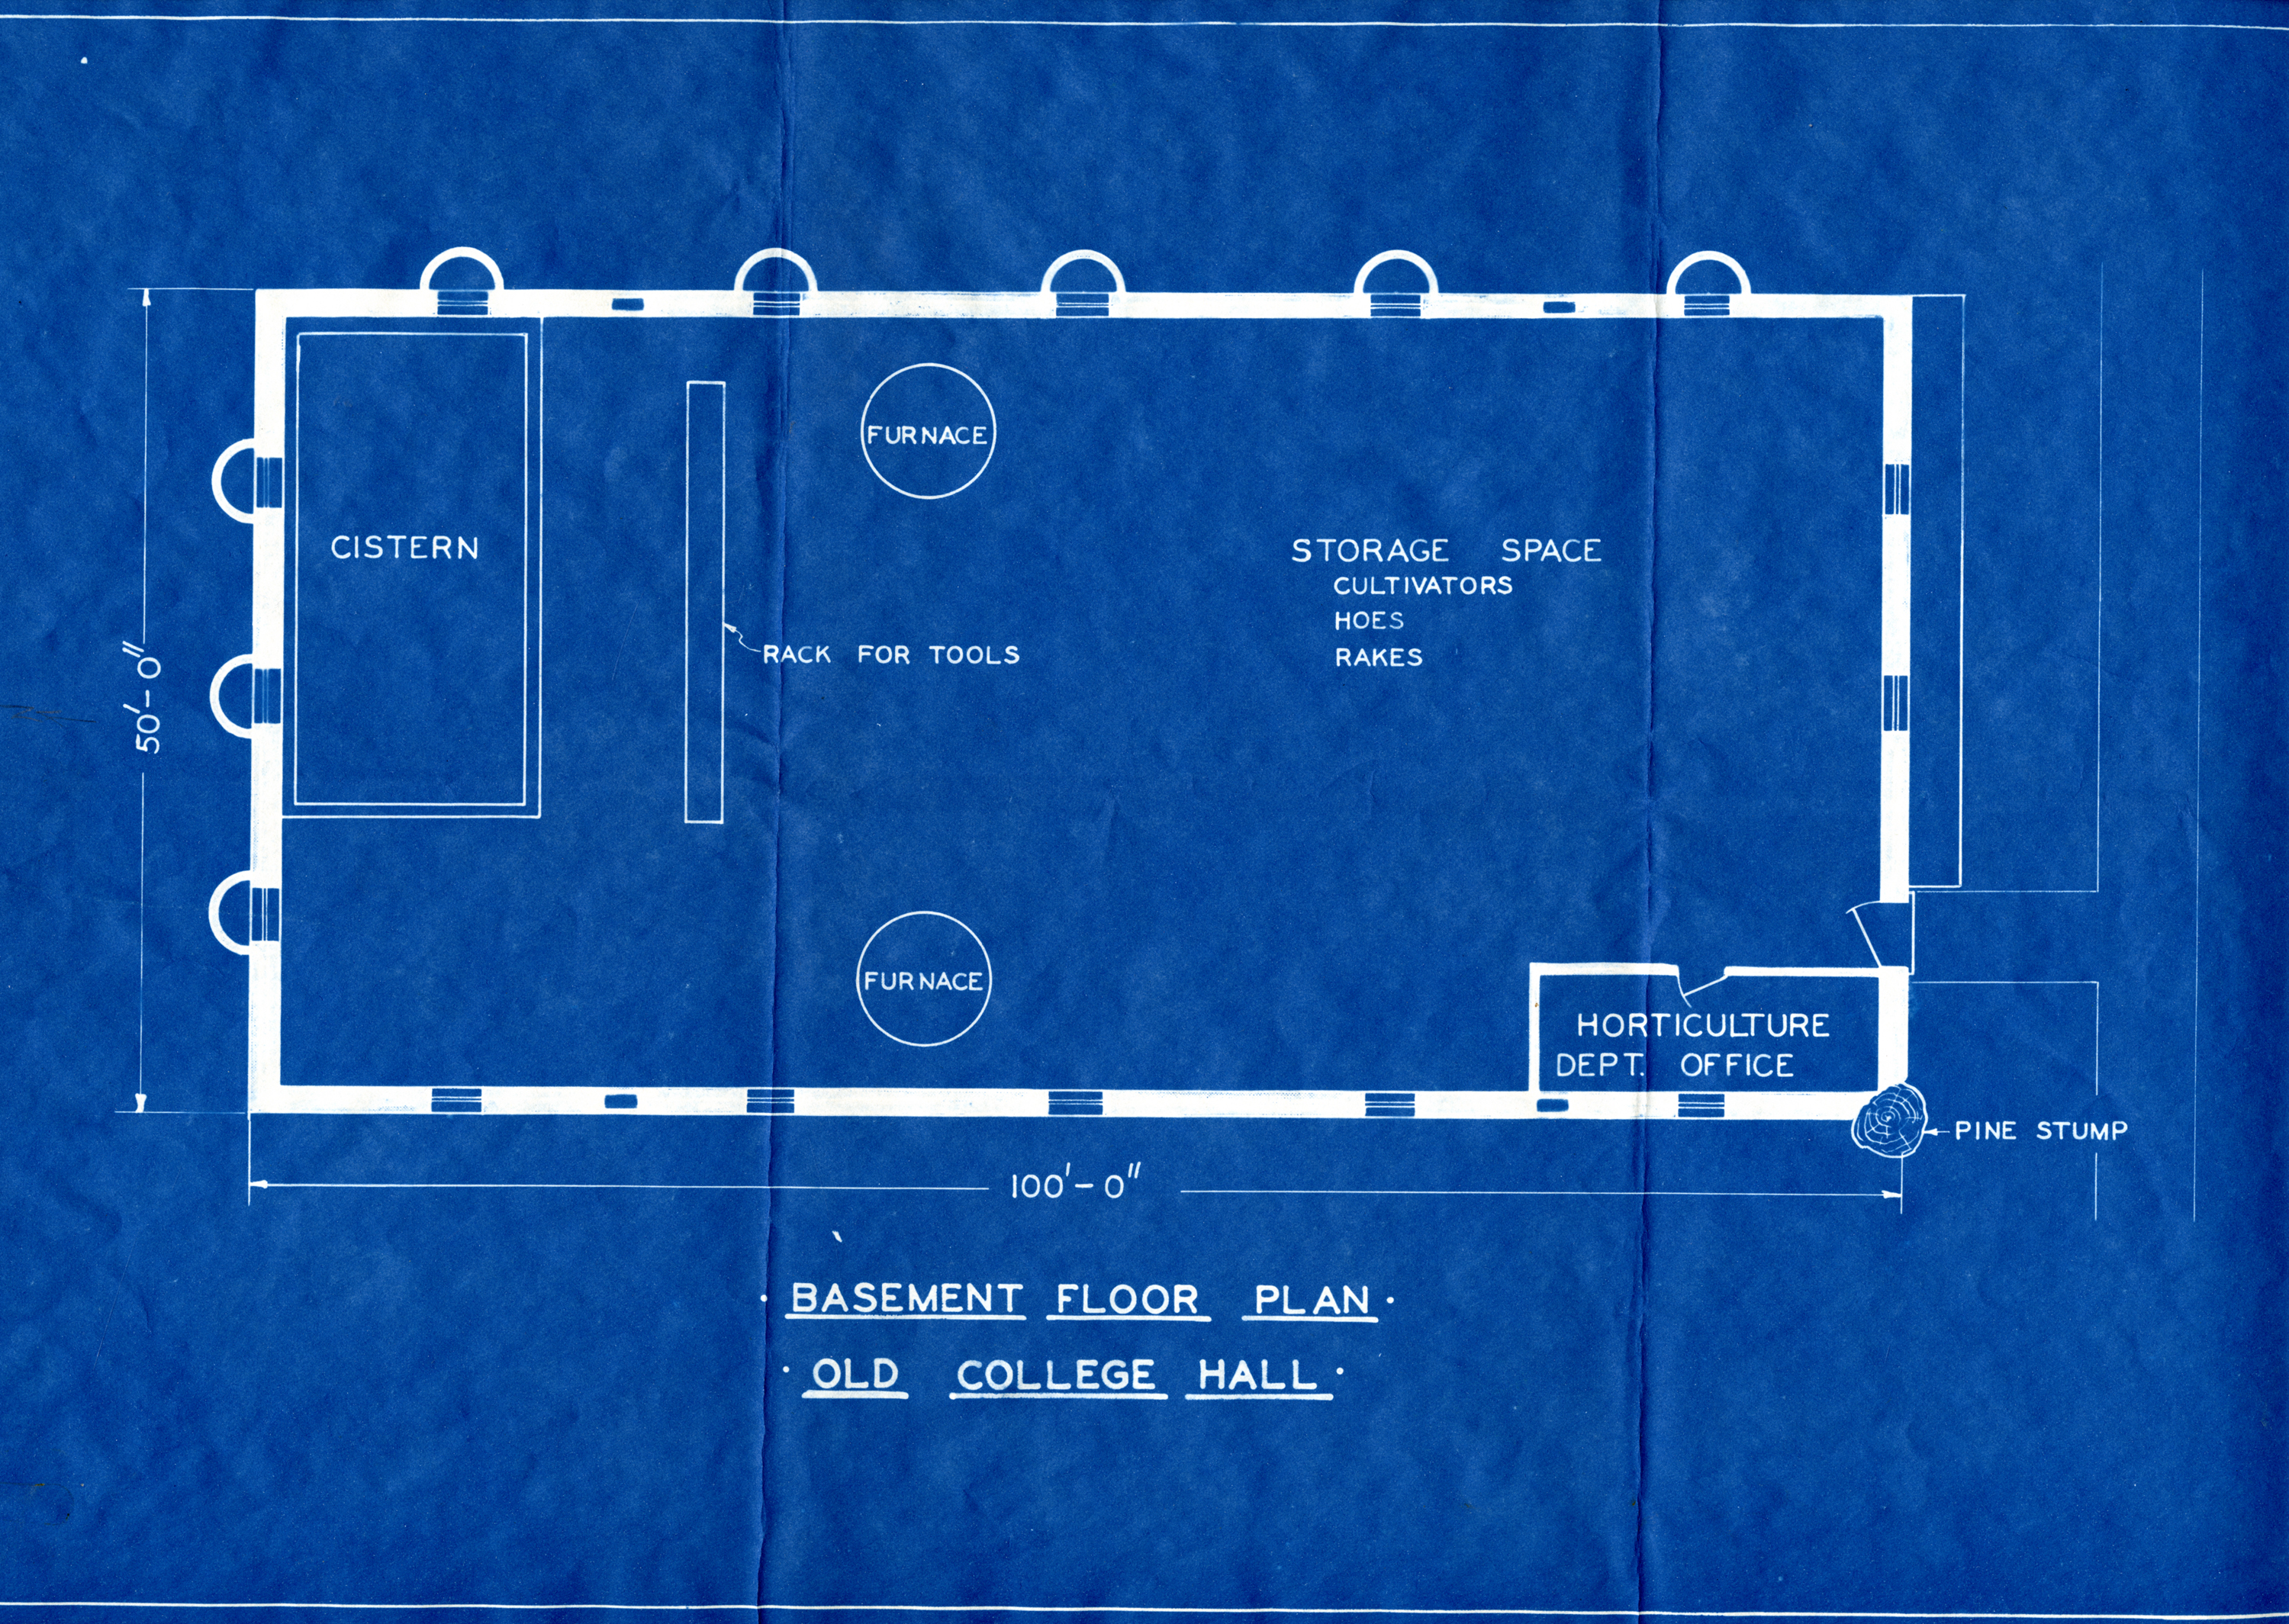 Blue Print for College Hall, Basement